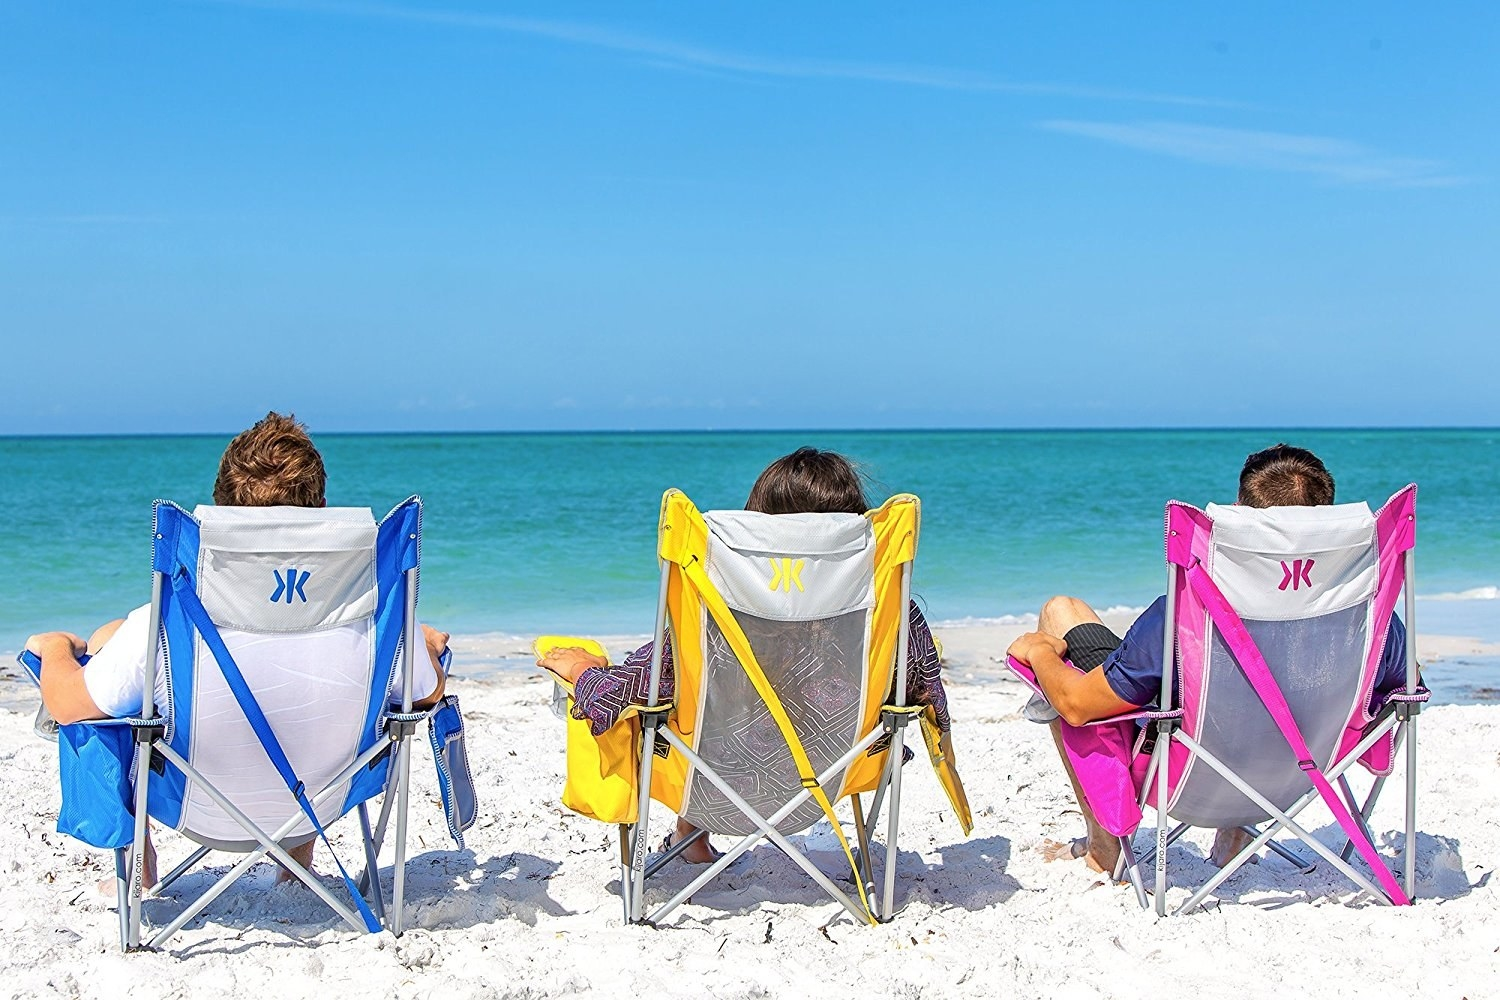 Pleasant 13 Of The Best Beach Chairs You Can Get On Amazon Spiritservingveterans Wood Chair Design Ideas Spiritservingveteransorg